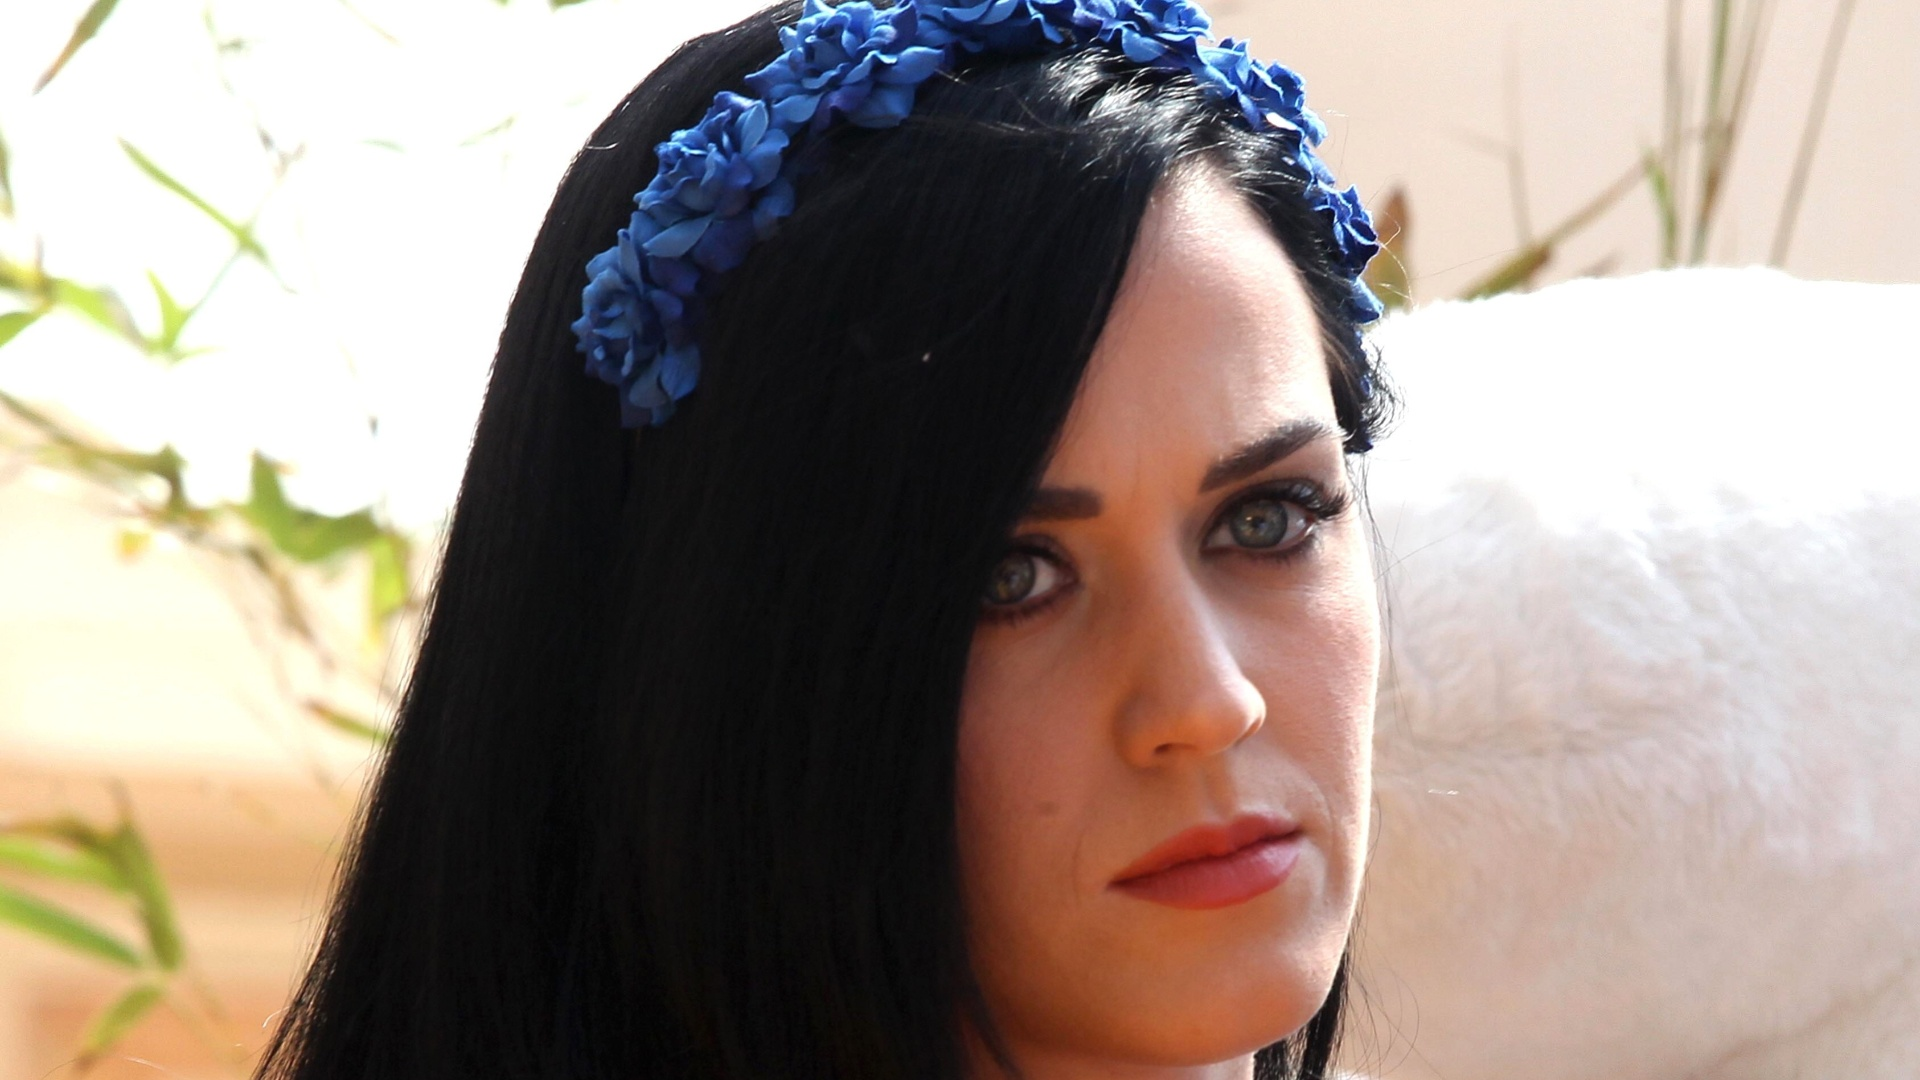 22.Abr.2013 - Katy Perry promove o filme